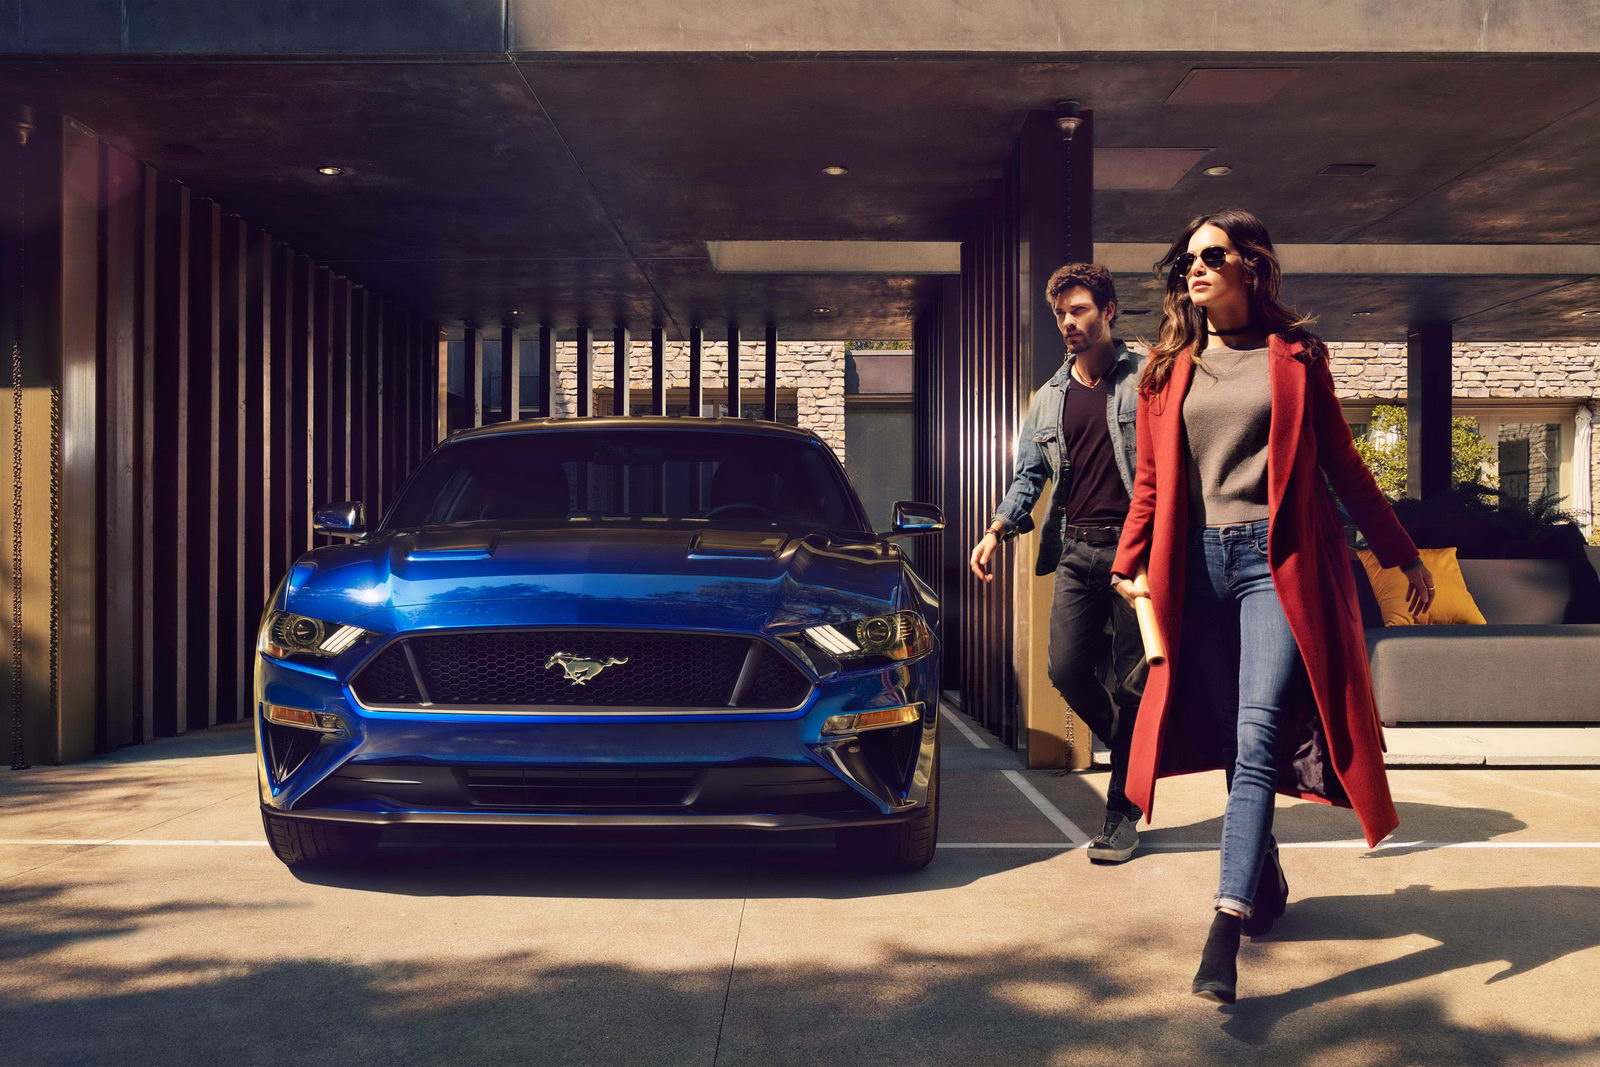 Ford Mustang GT facelift 2018 21